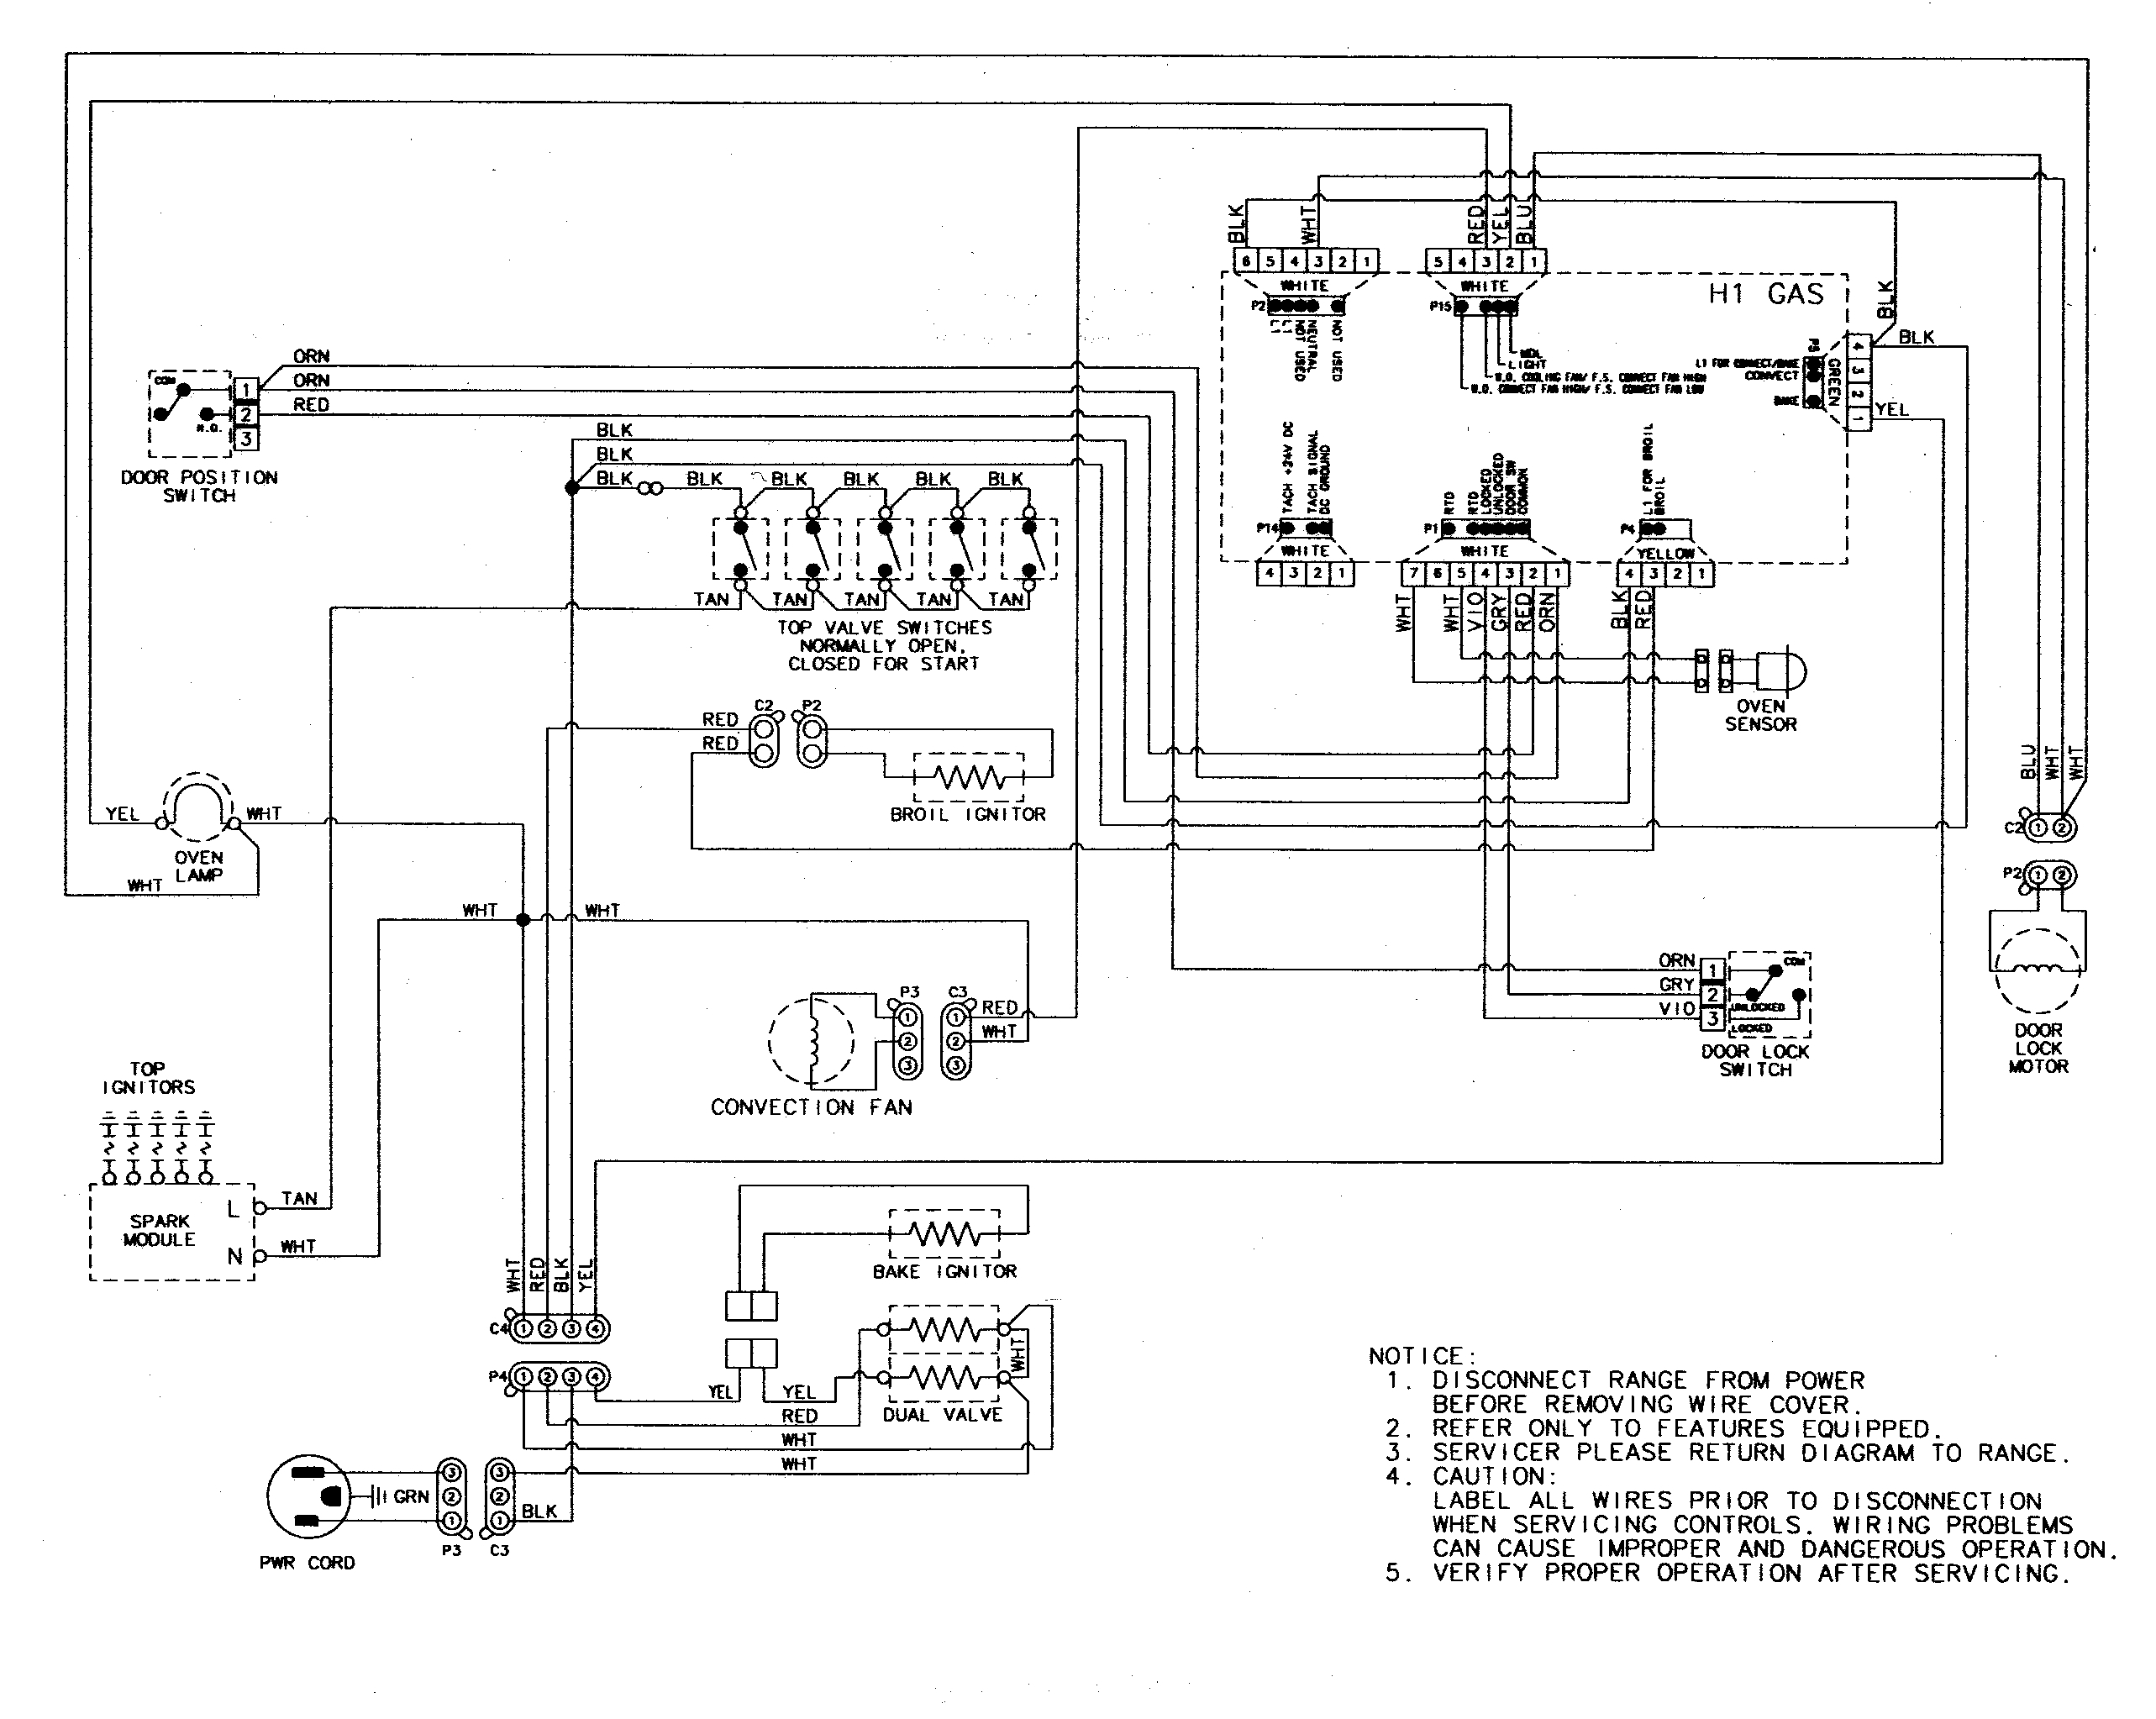 40 range schematic wiring diagram wiring diagram